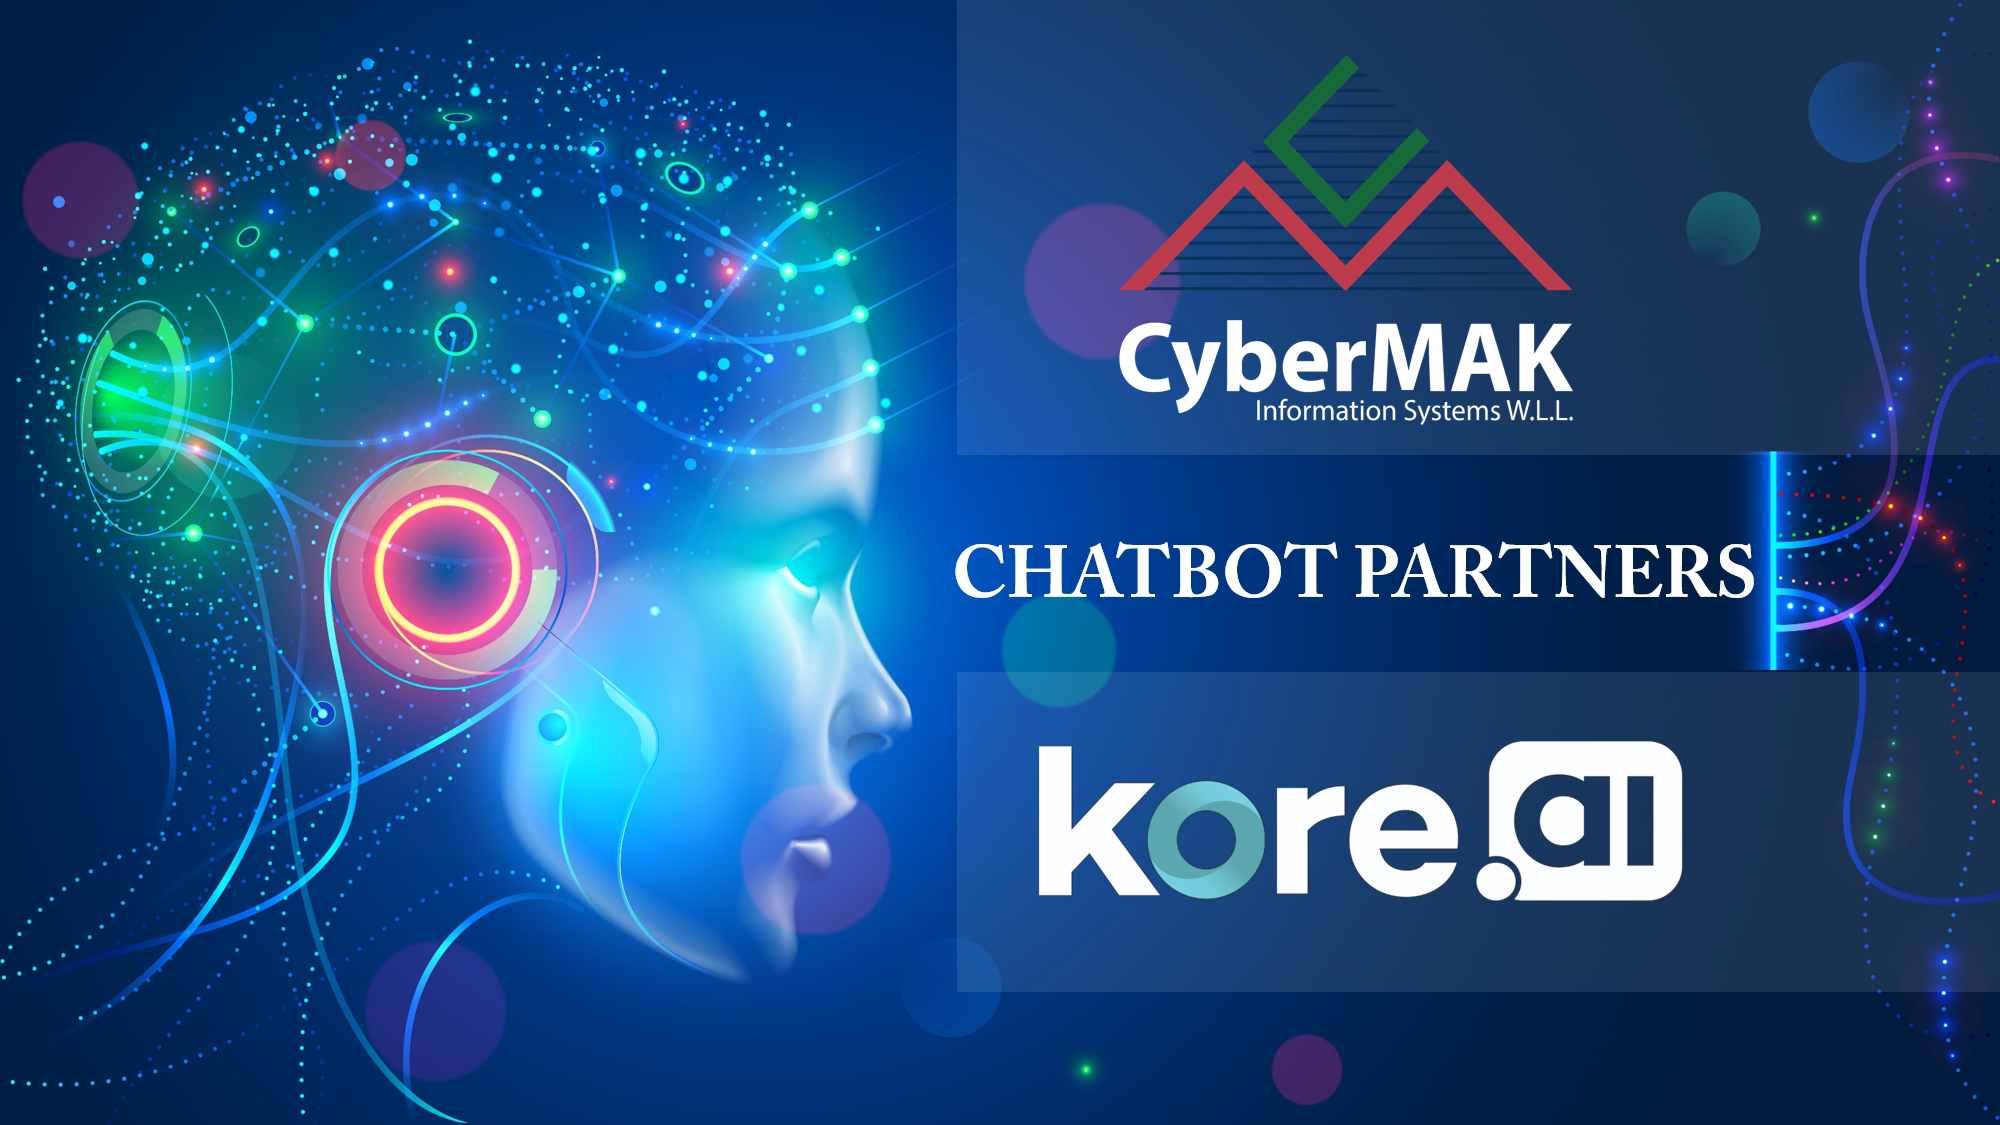 CyberMAK partners with Kore.ai offering Conversational AI-Powered Chatbots for Digital Transformation